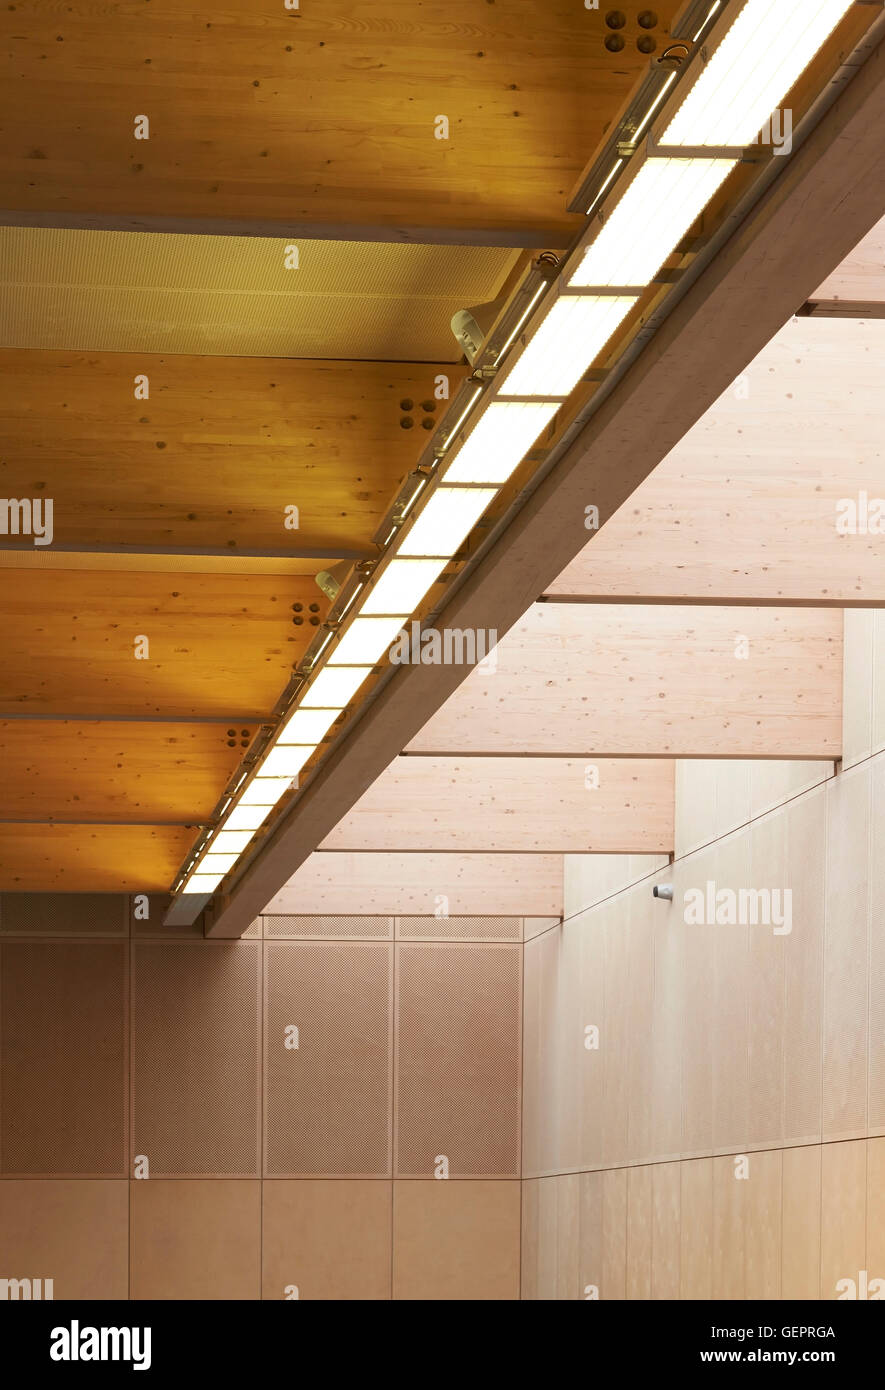 Detail of timber ceiling in sportshall. Eton Manor - Lee Valley ...